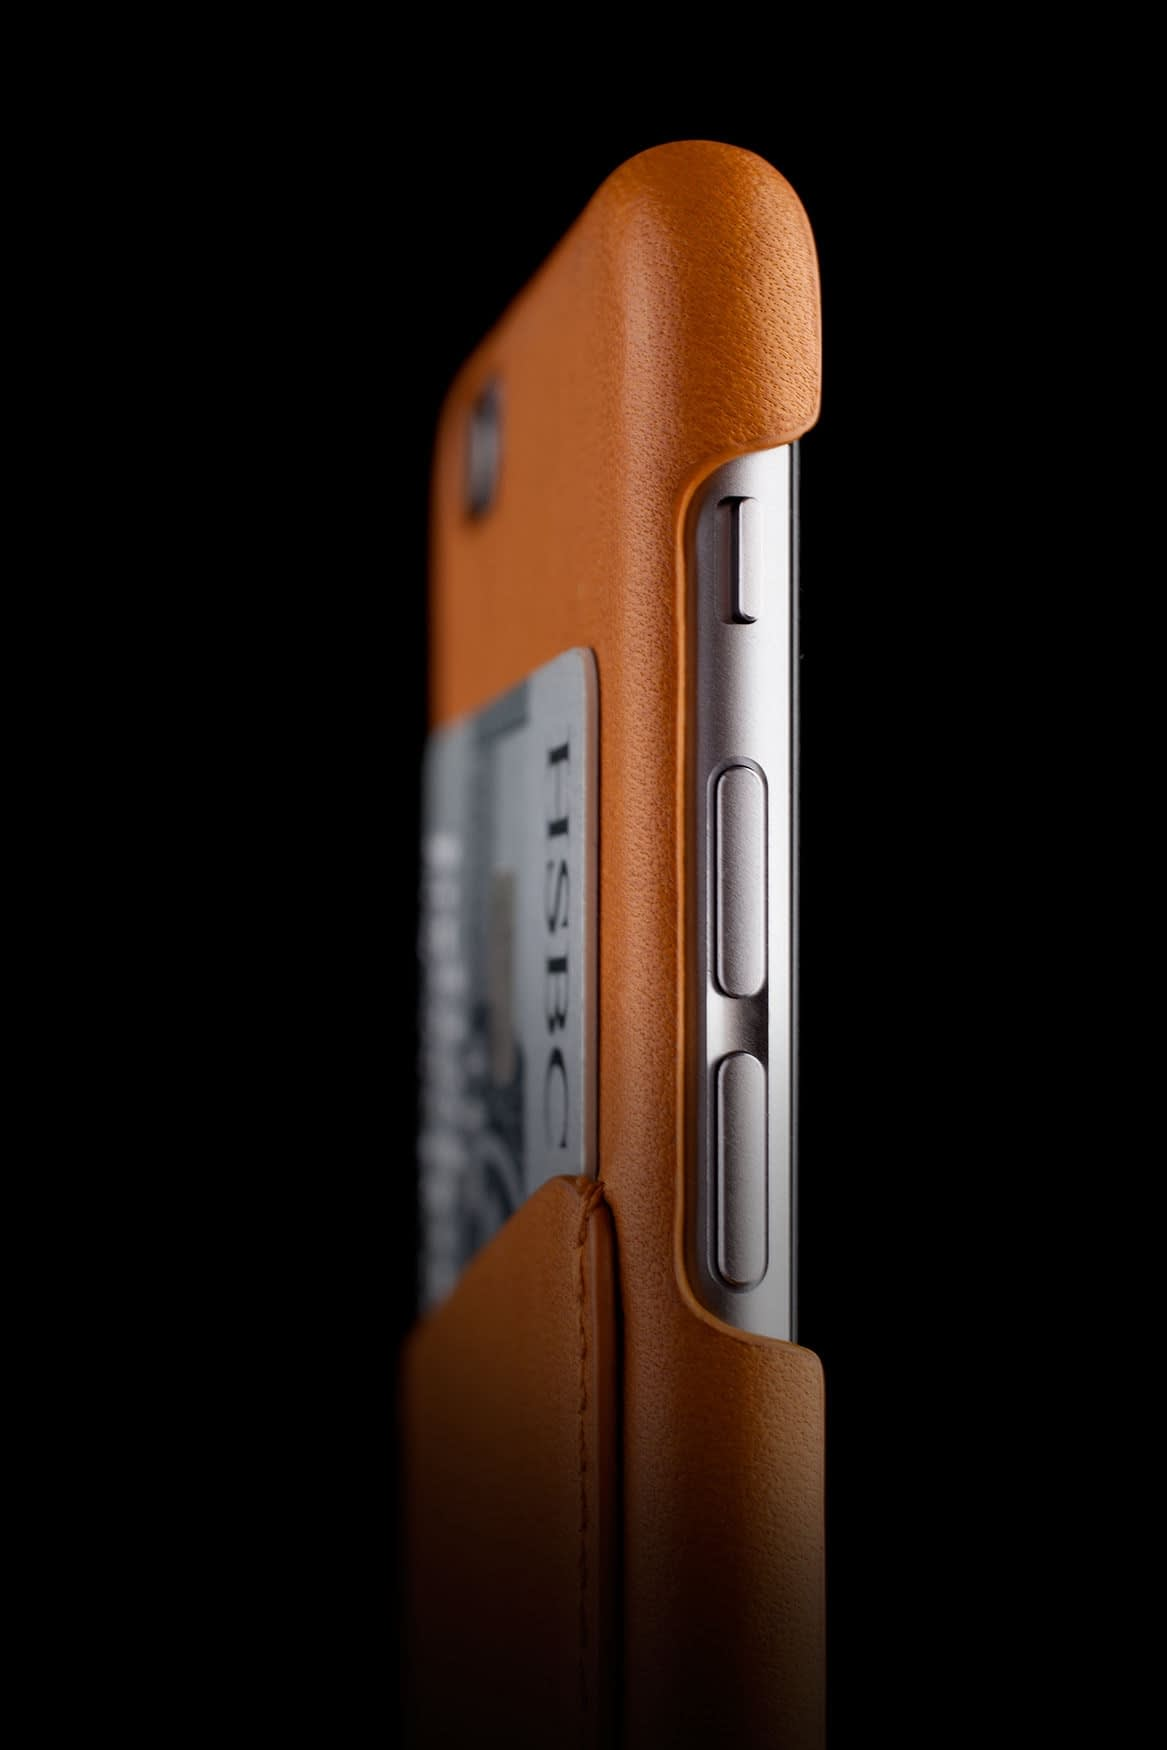 Leather Wallet Case for iPhone 6 Tan Lifestyle 008